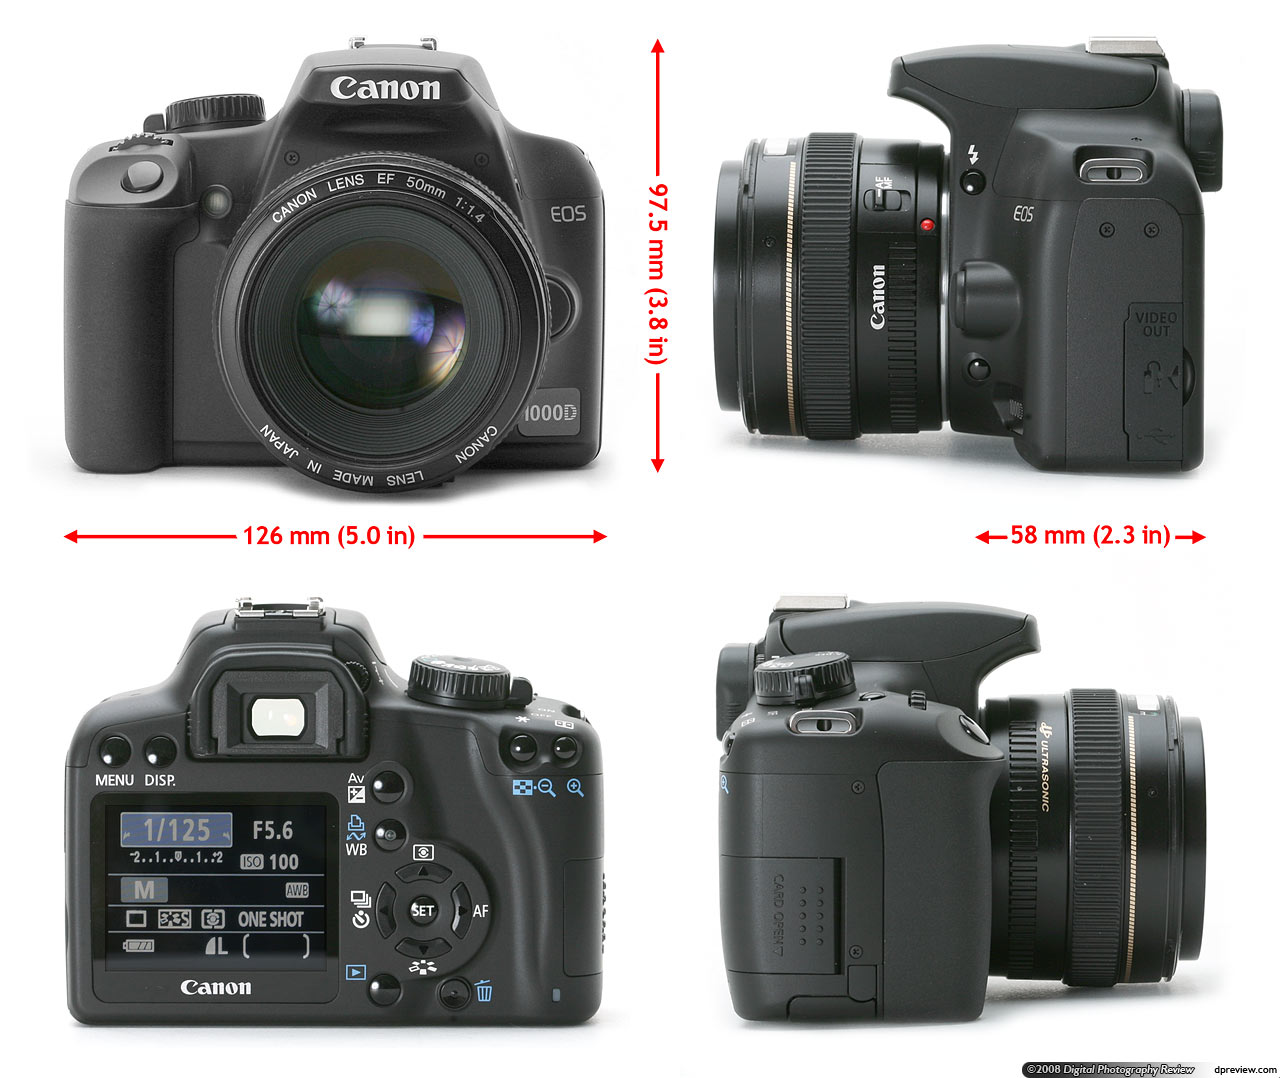 Canon EOS 1000D (Rebel XS / Kiss F) Review: Digital Photography Review